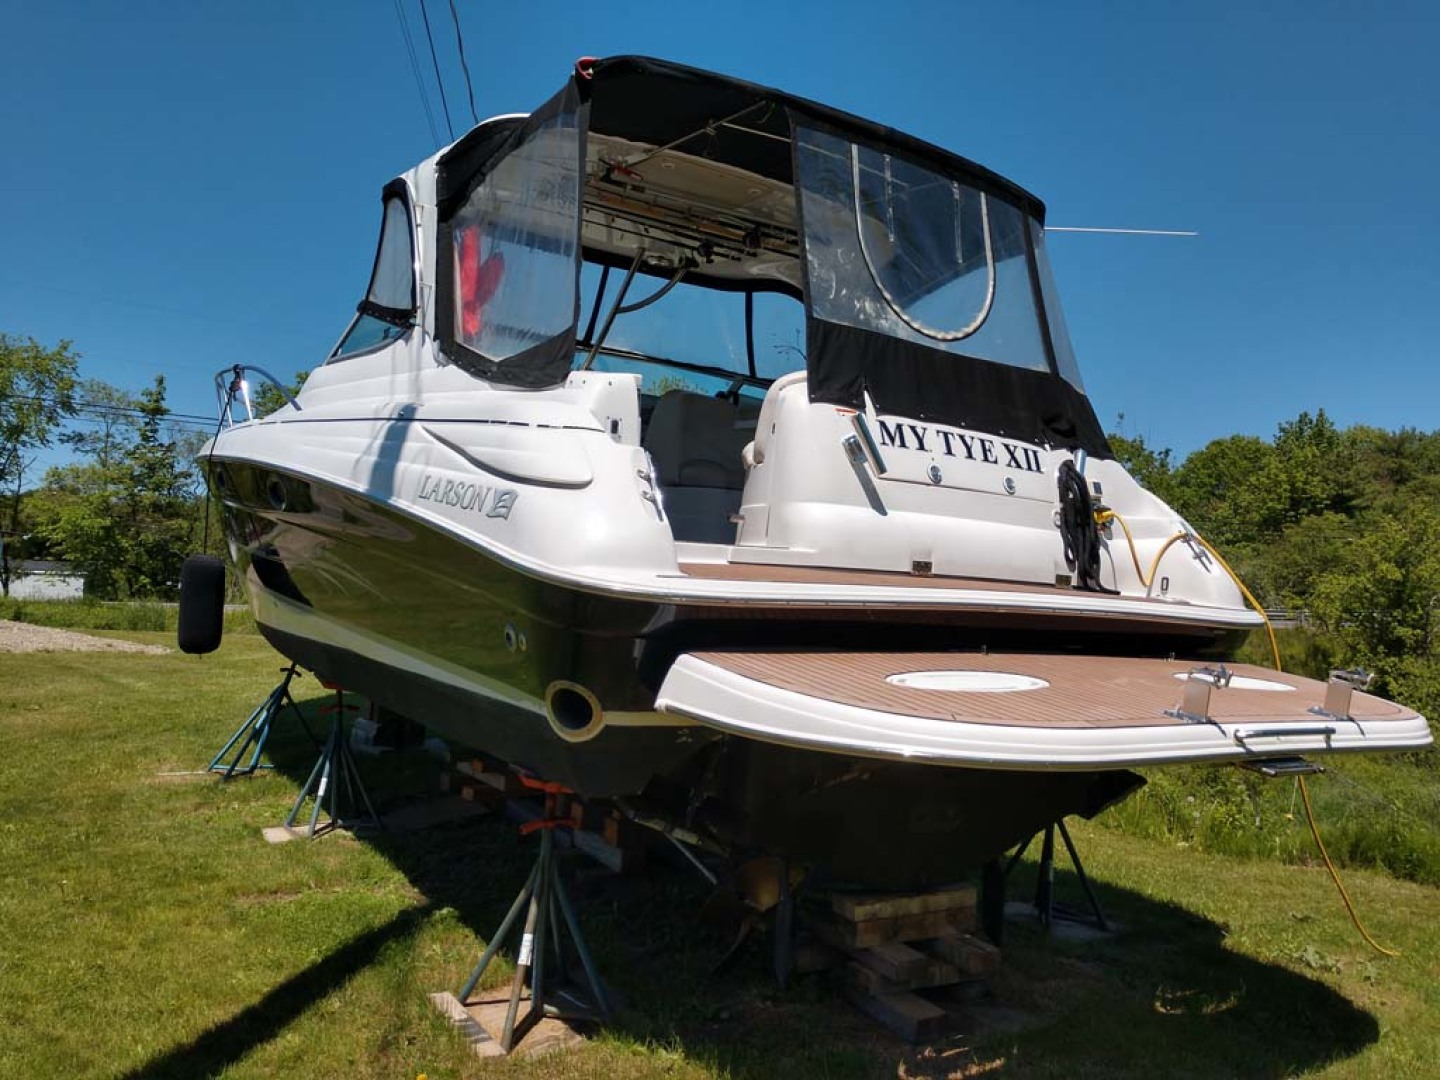 Larson-Cabrio 370 2007-My Tye XII Wiscasset-Maine-United States-Stern To Cockpit-1174459 | Thumbnail